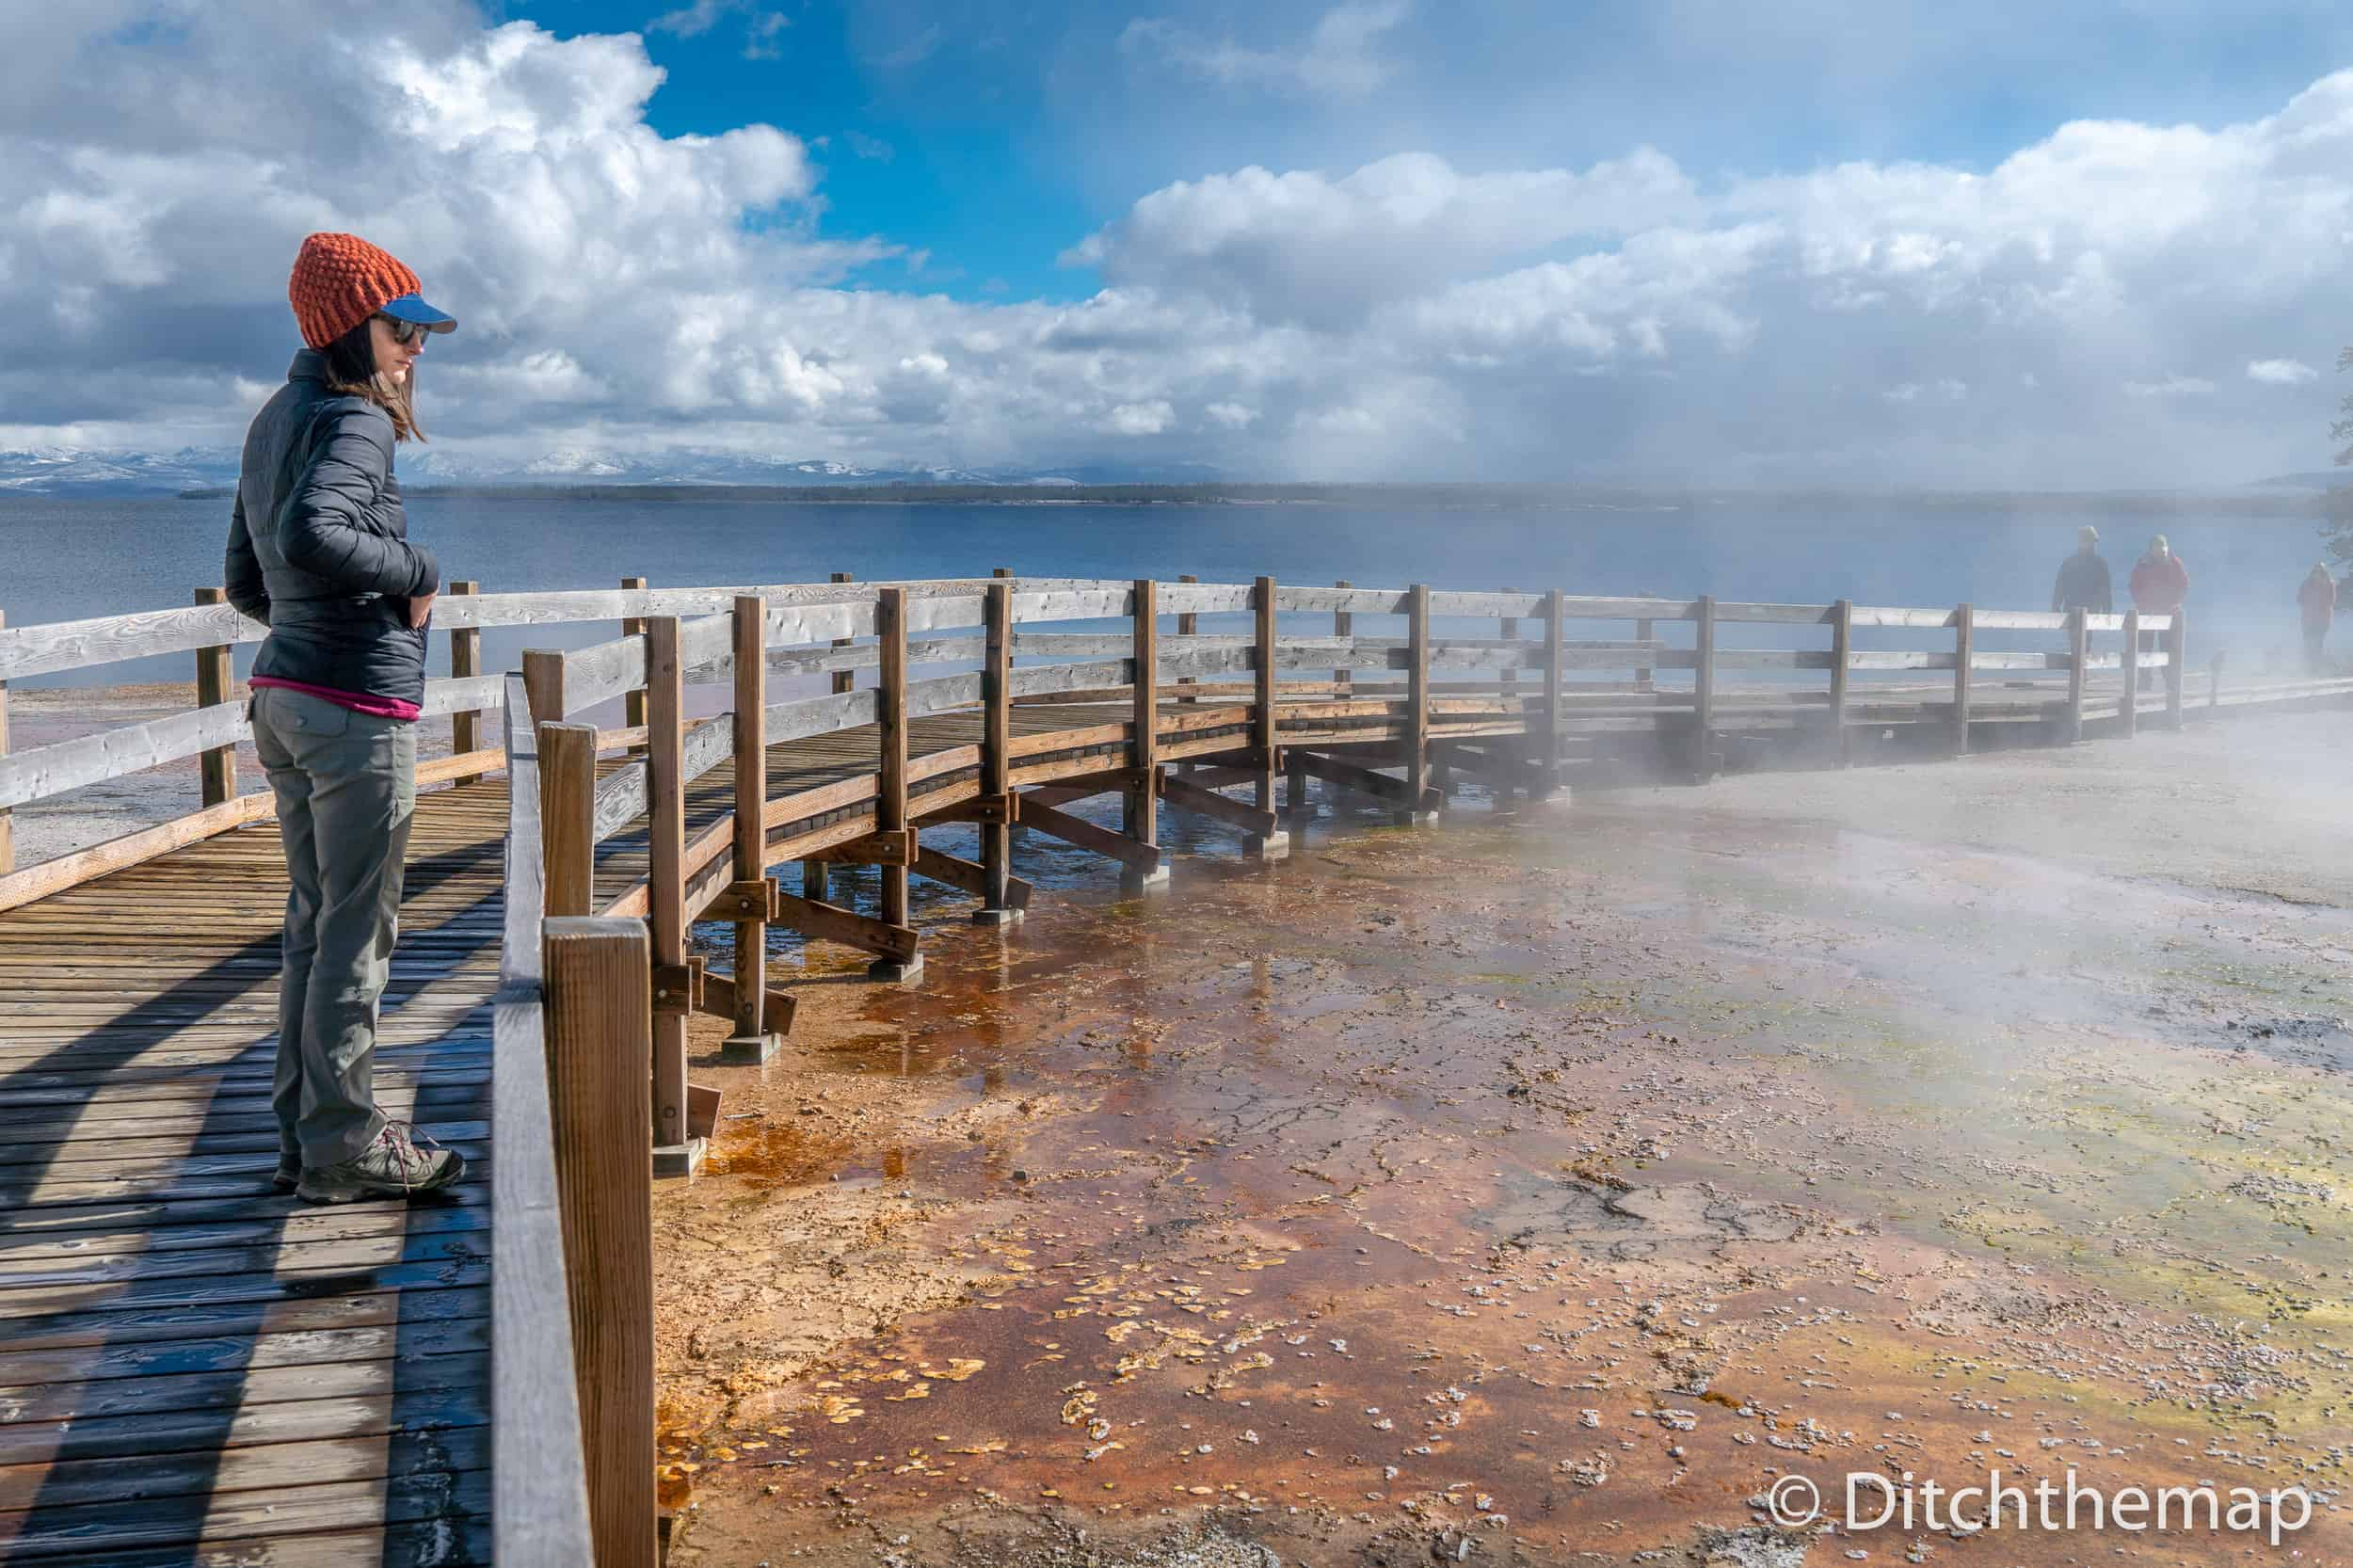 A woman with a jacket looking at the steam coming from the ground at Yellowstone